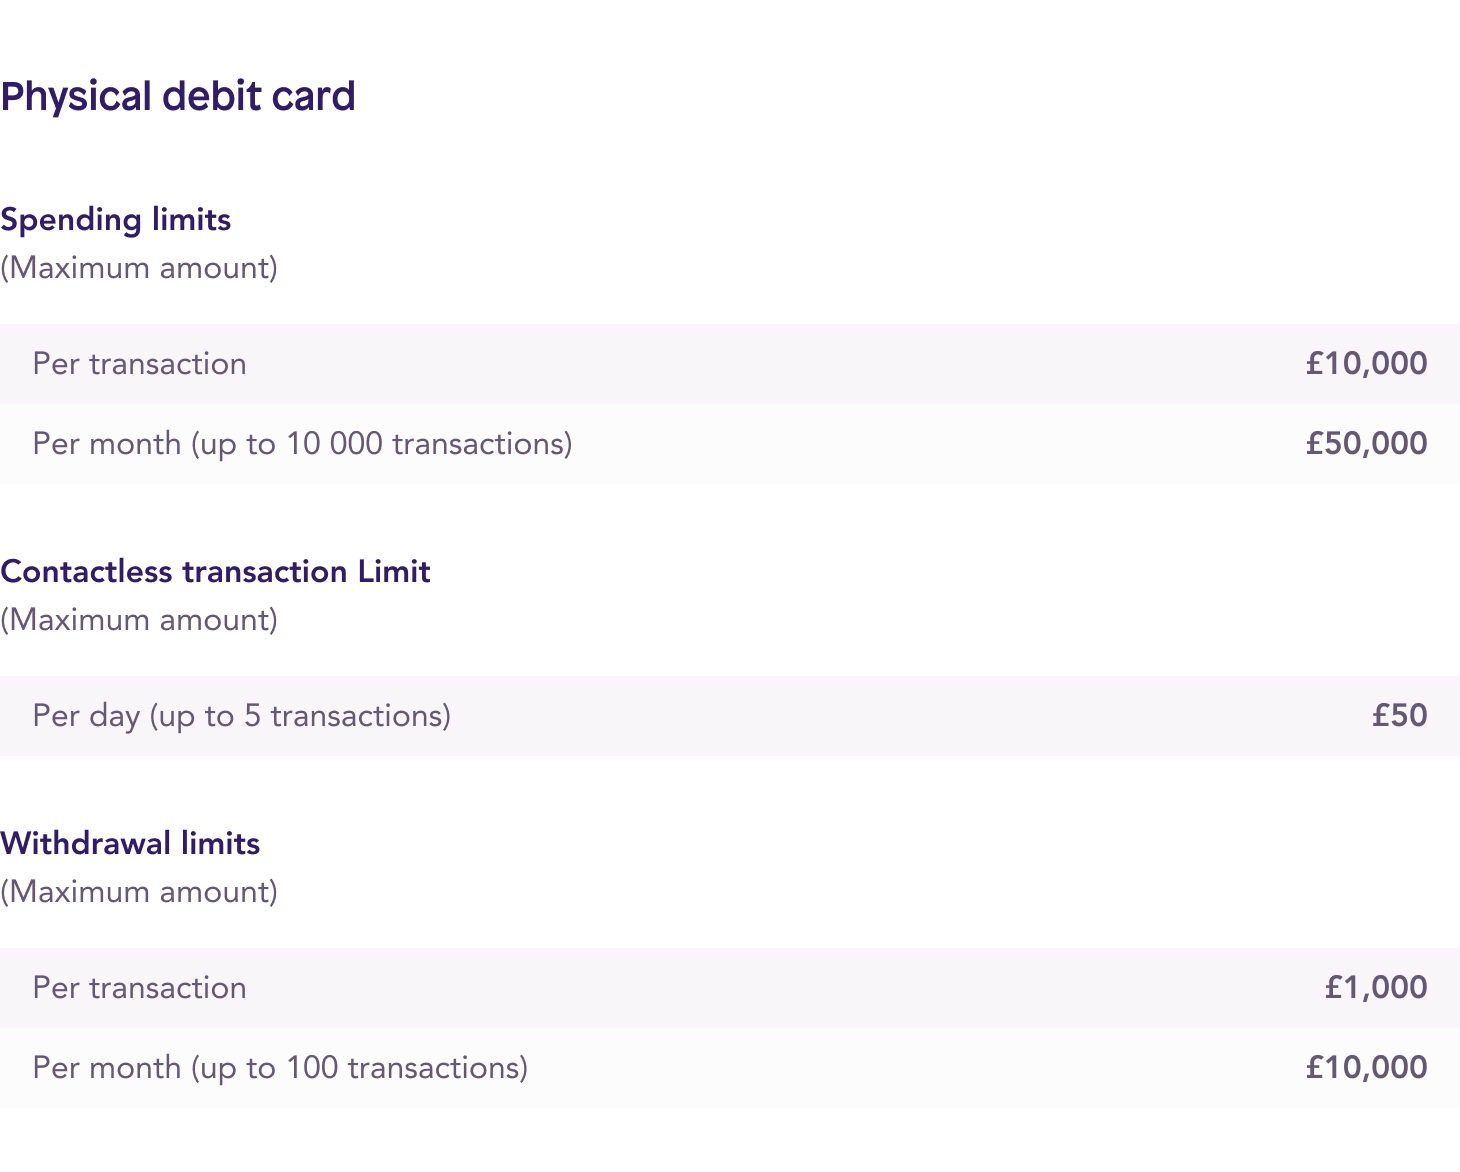 Spendesk GBP physical debit cards spending limits